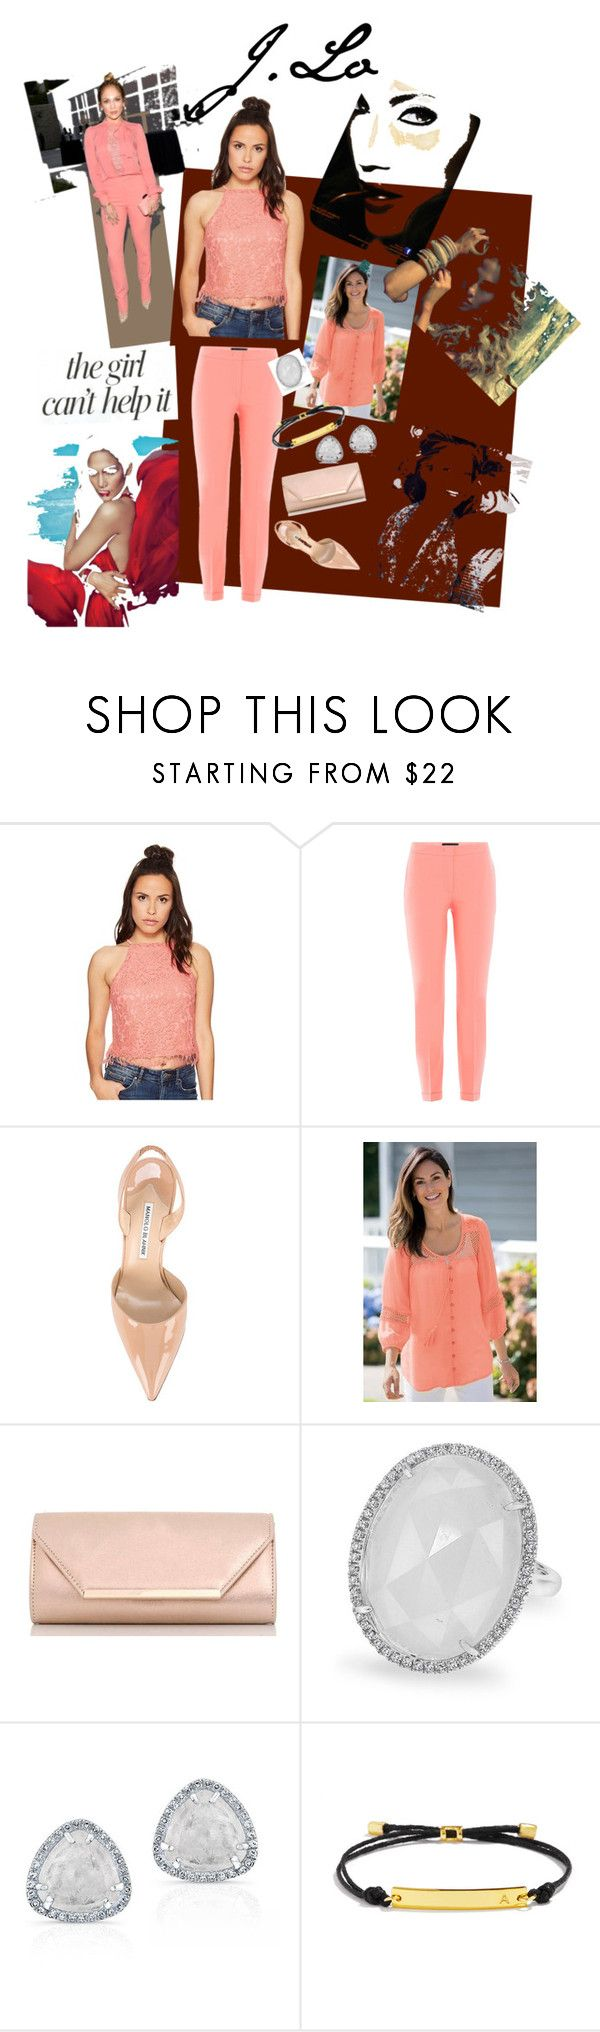 """""""J. Lo Driven"""" by mb-magic-styles ❤ liked on Polyvore featuring Jennifer Lopez, Bishop + Young, Piazza Sempione, Manolo Blahnik, Dorothy Perkins, BaubleBar and JLo by Jennifer Lopez"""